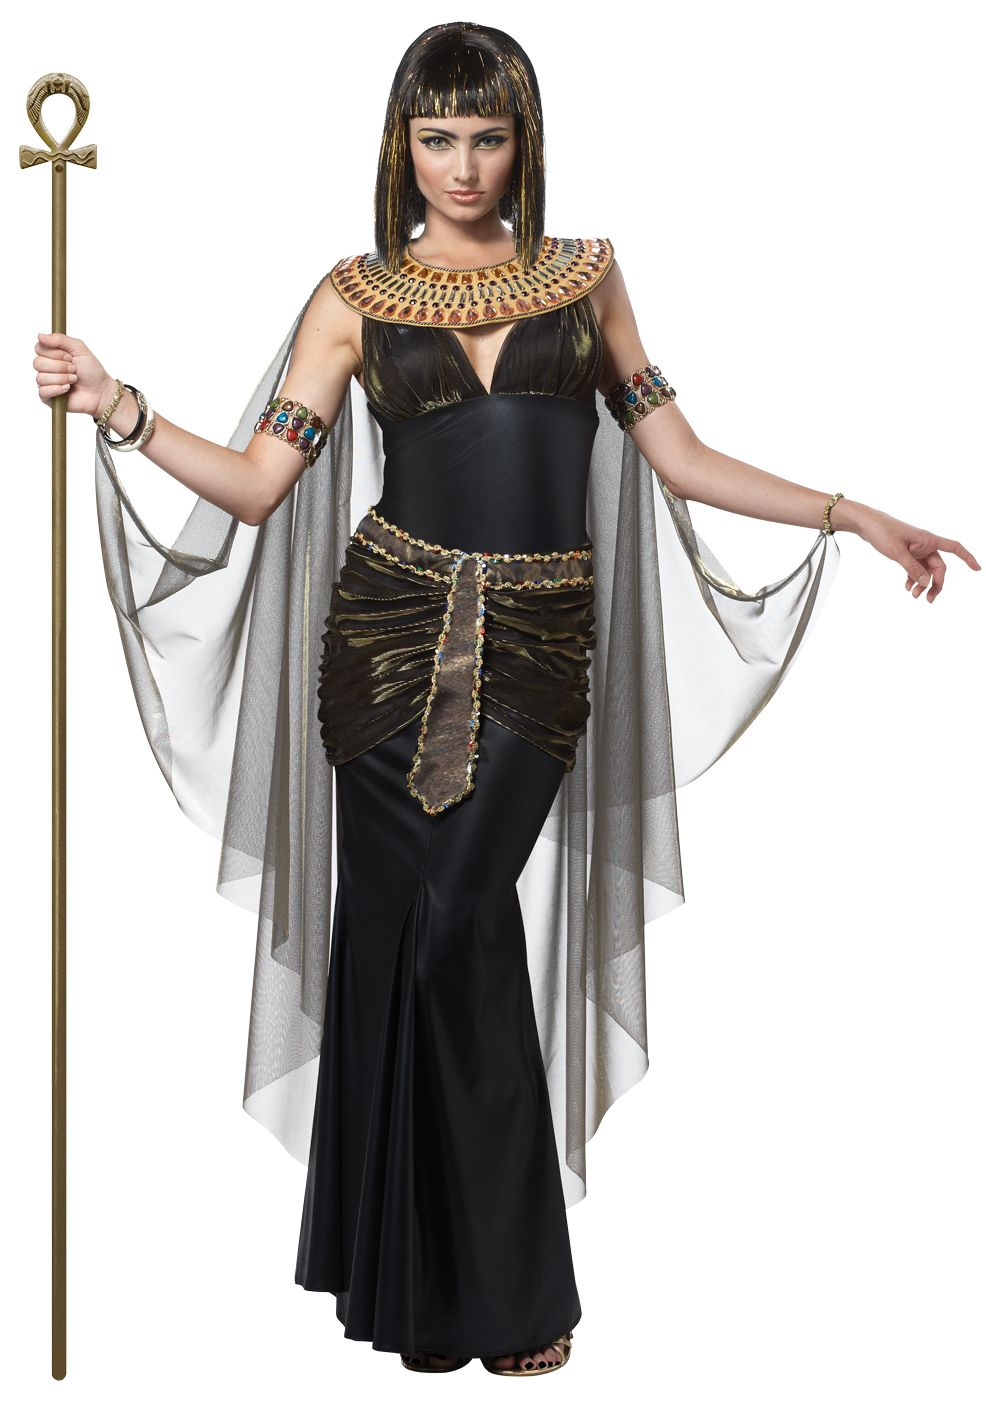 64b317334b420 Details about Deluxe Black Cleopatra Egyptian Queen Ladies Fancy ...